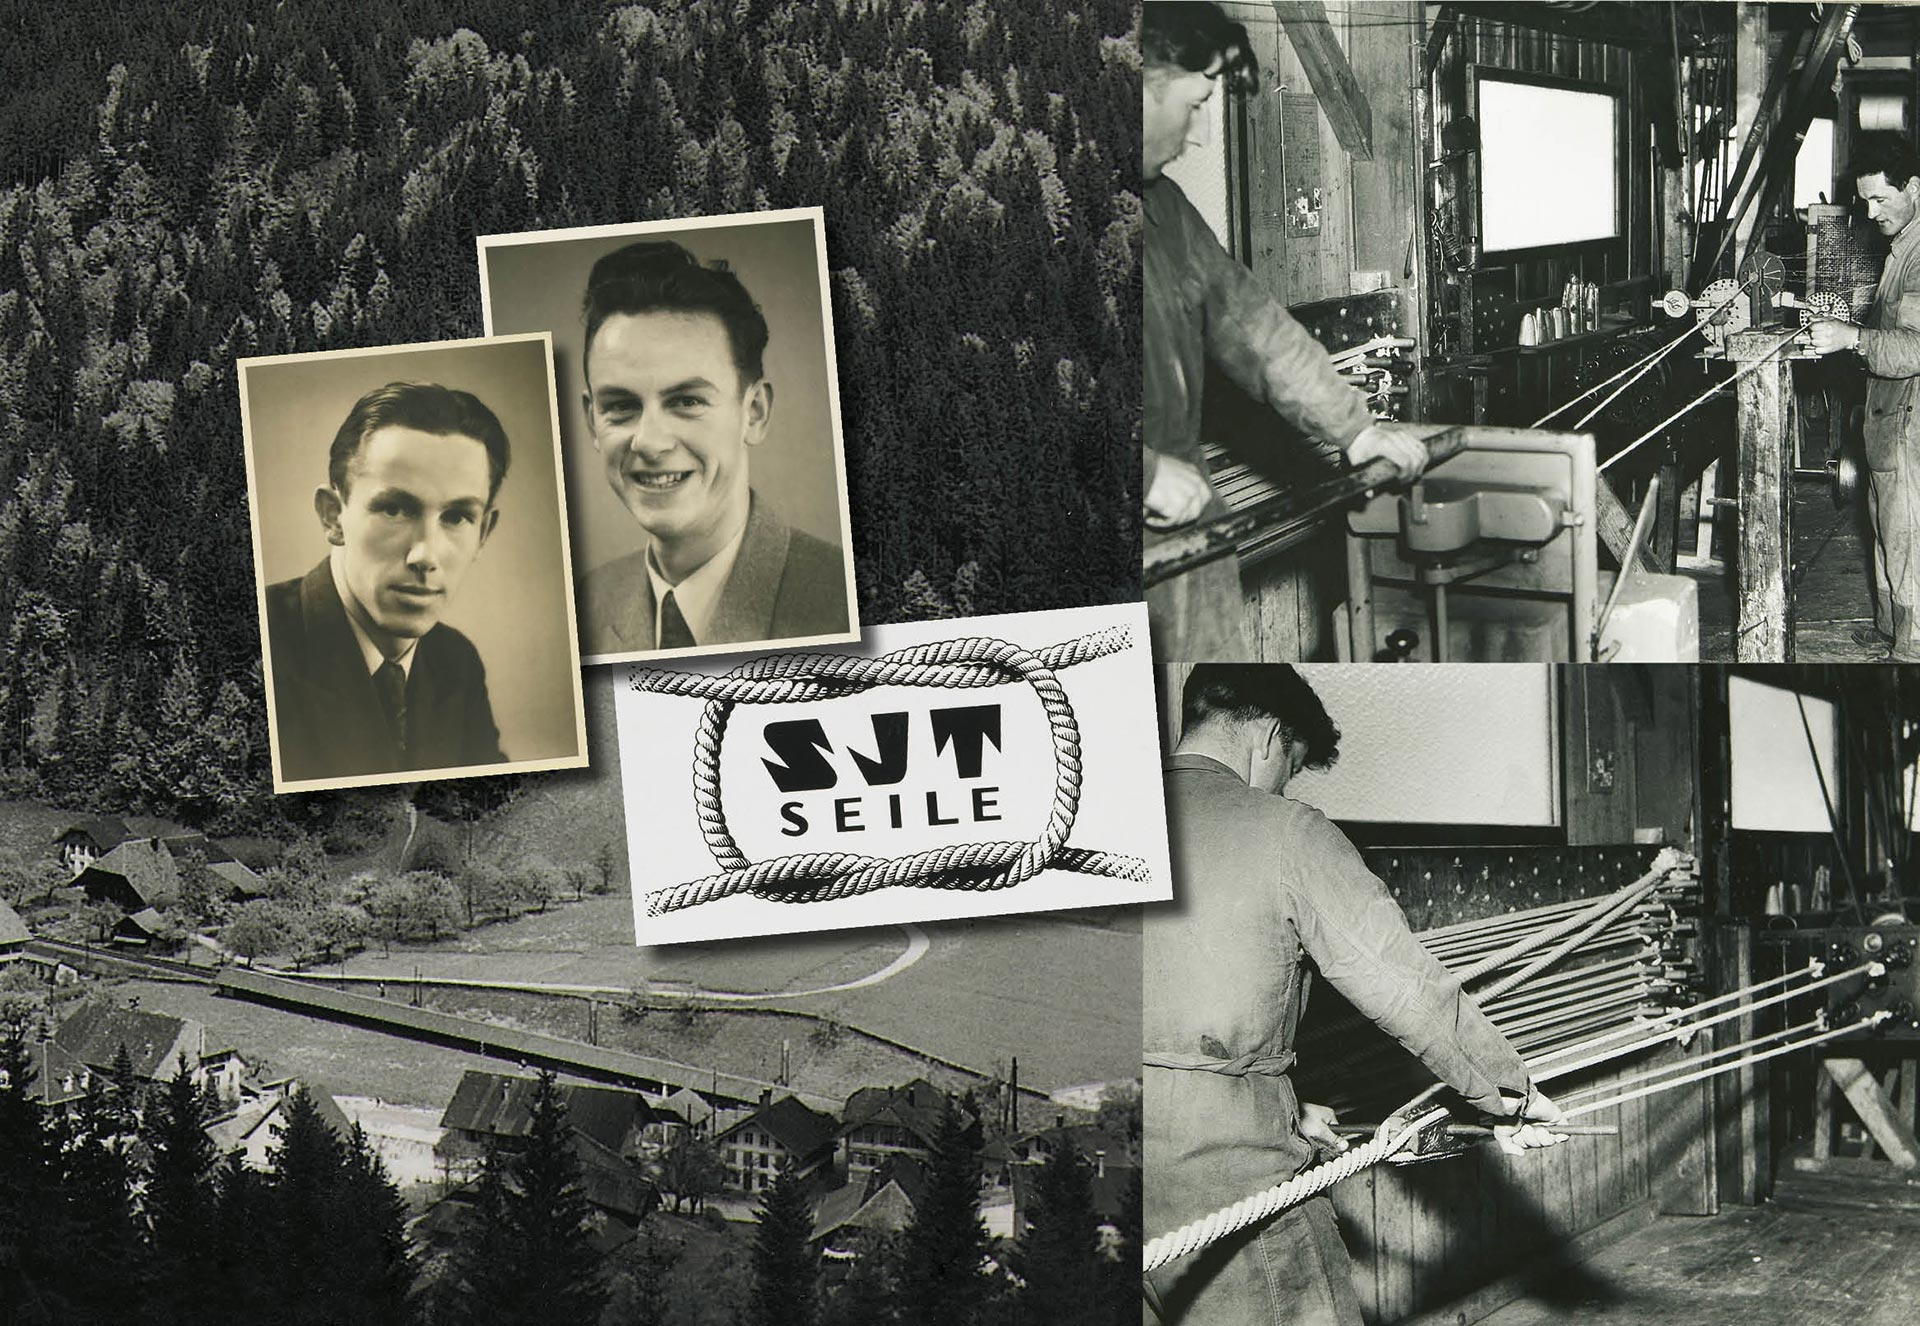 Montage of images of fibre rope making in the 1950s and images of Hans junior and Eduard Jakob